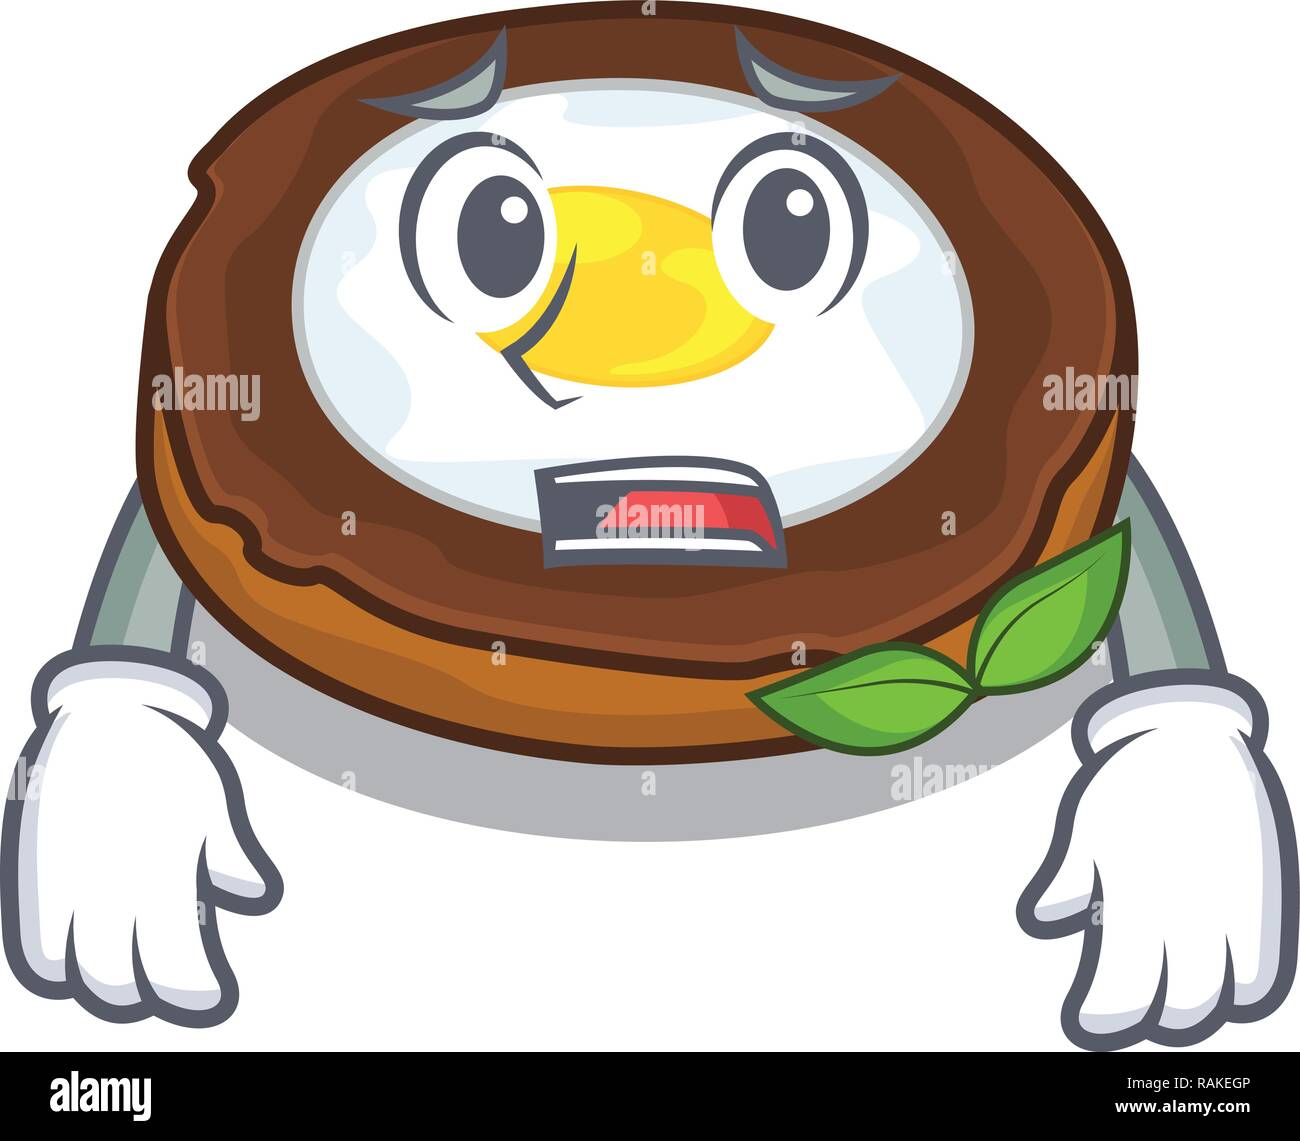 Afraid egg scotch on character wood boards - Stock Vector